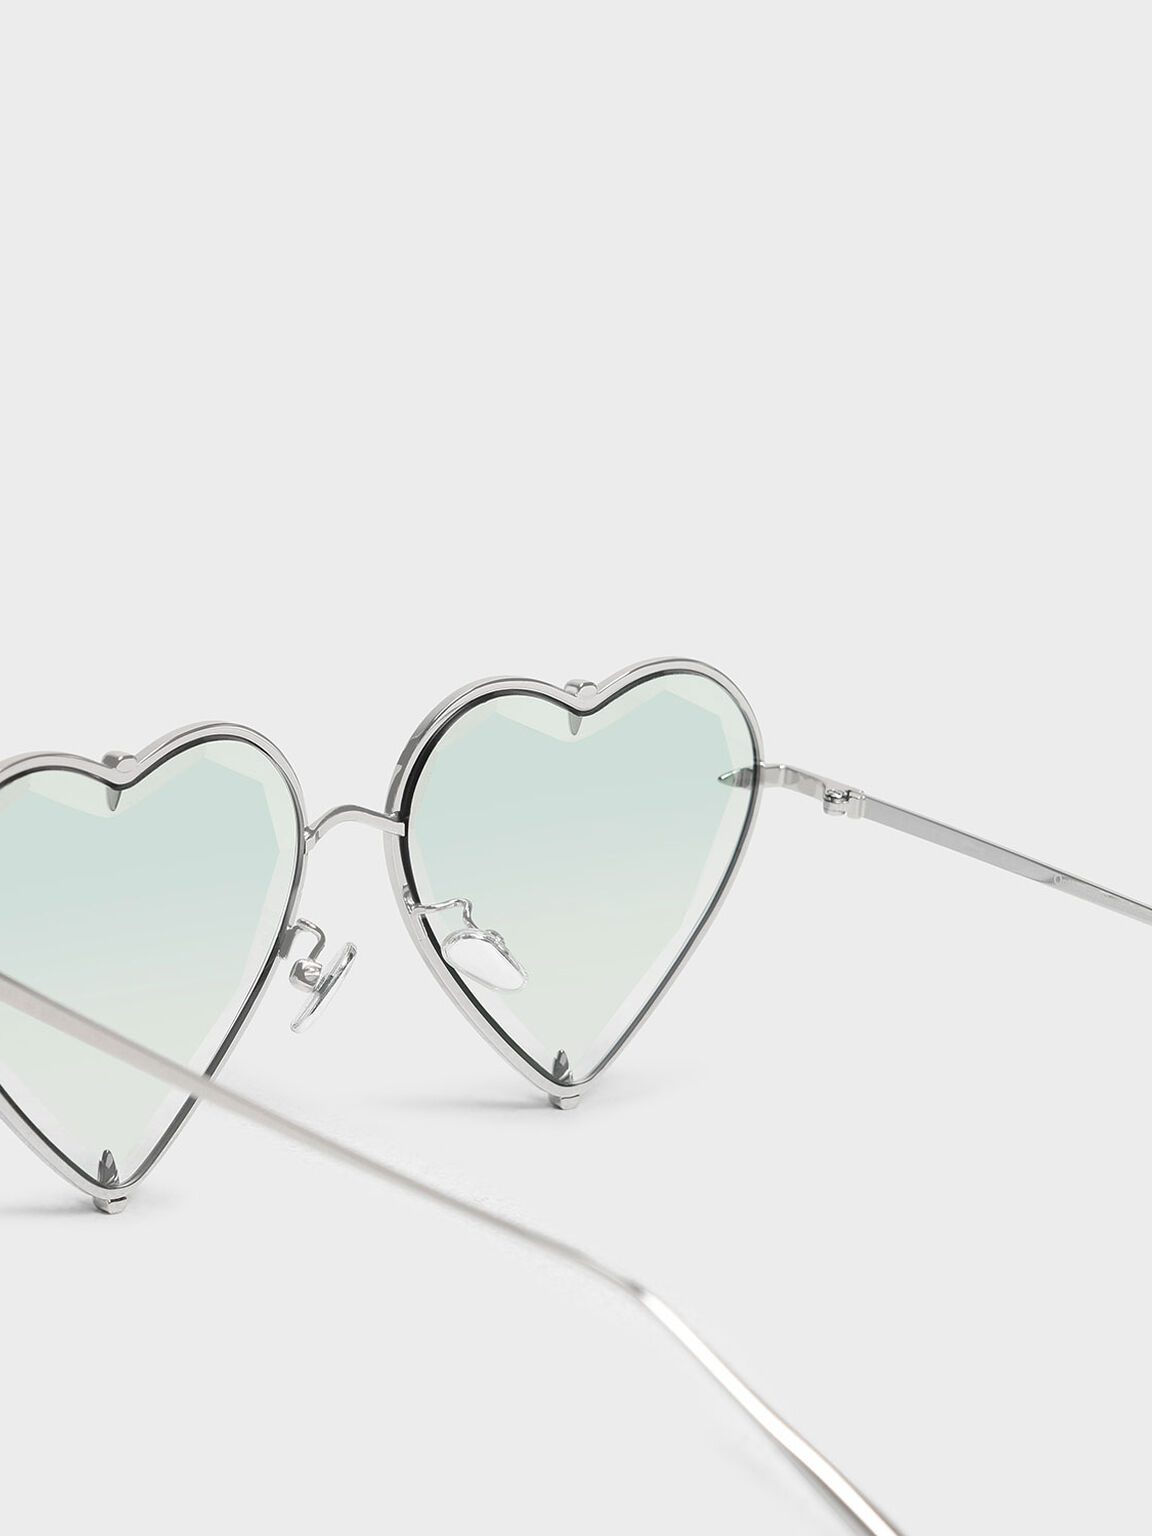 Thin Metal Frame Heart-Shaped Sunglasses, Multi, hi-res